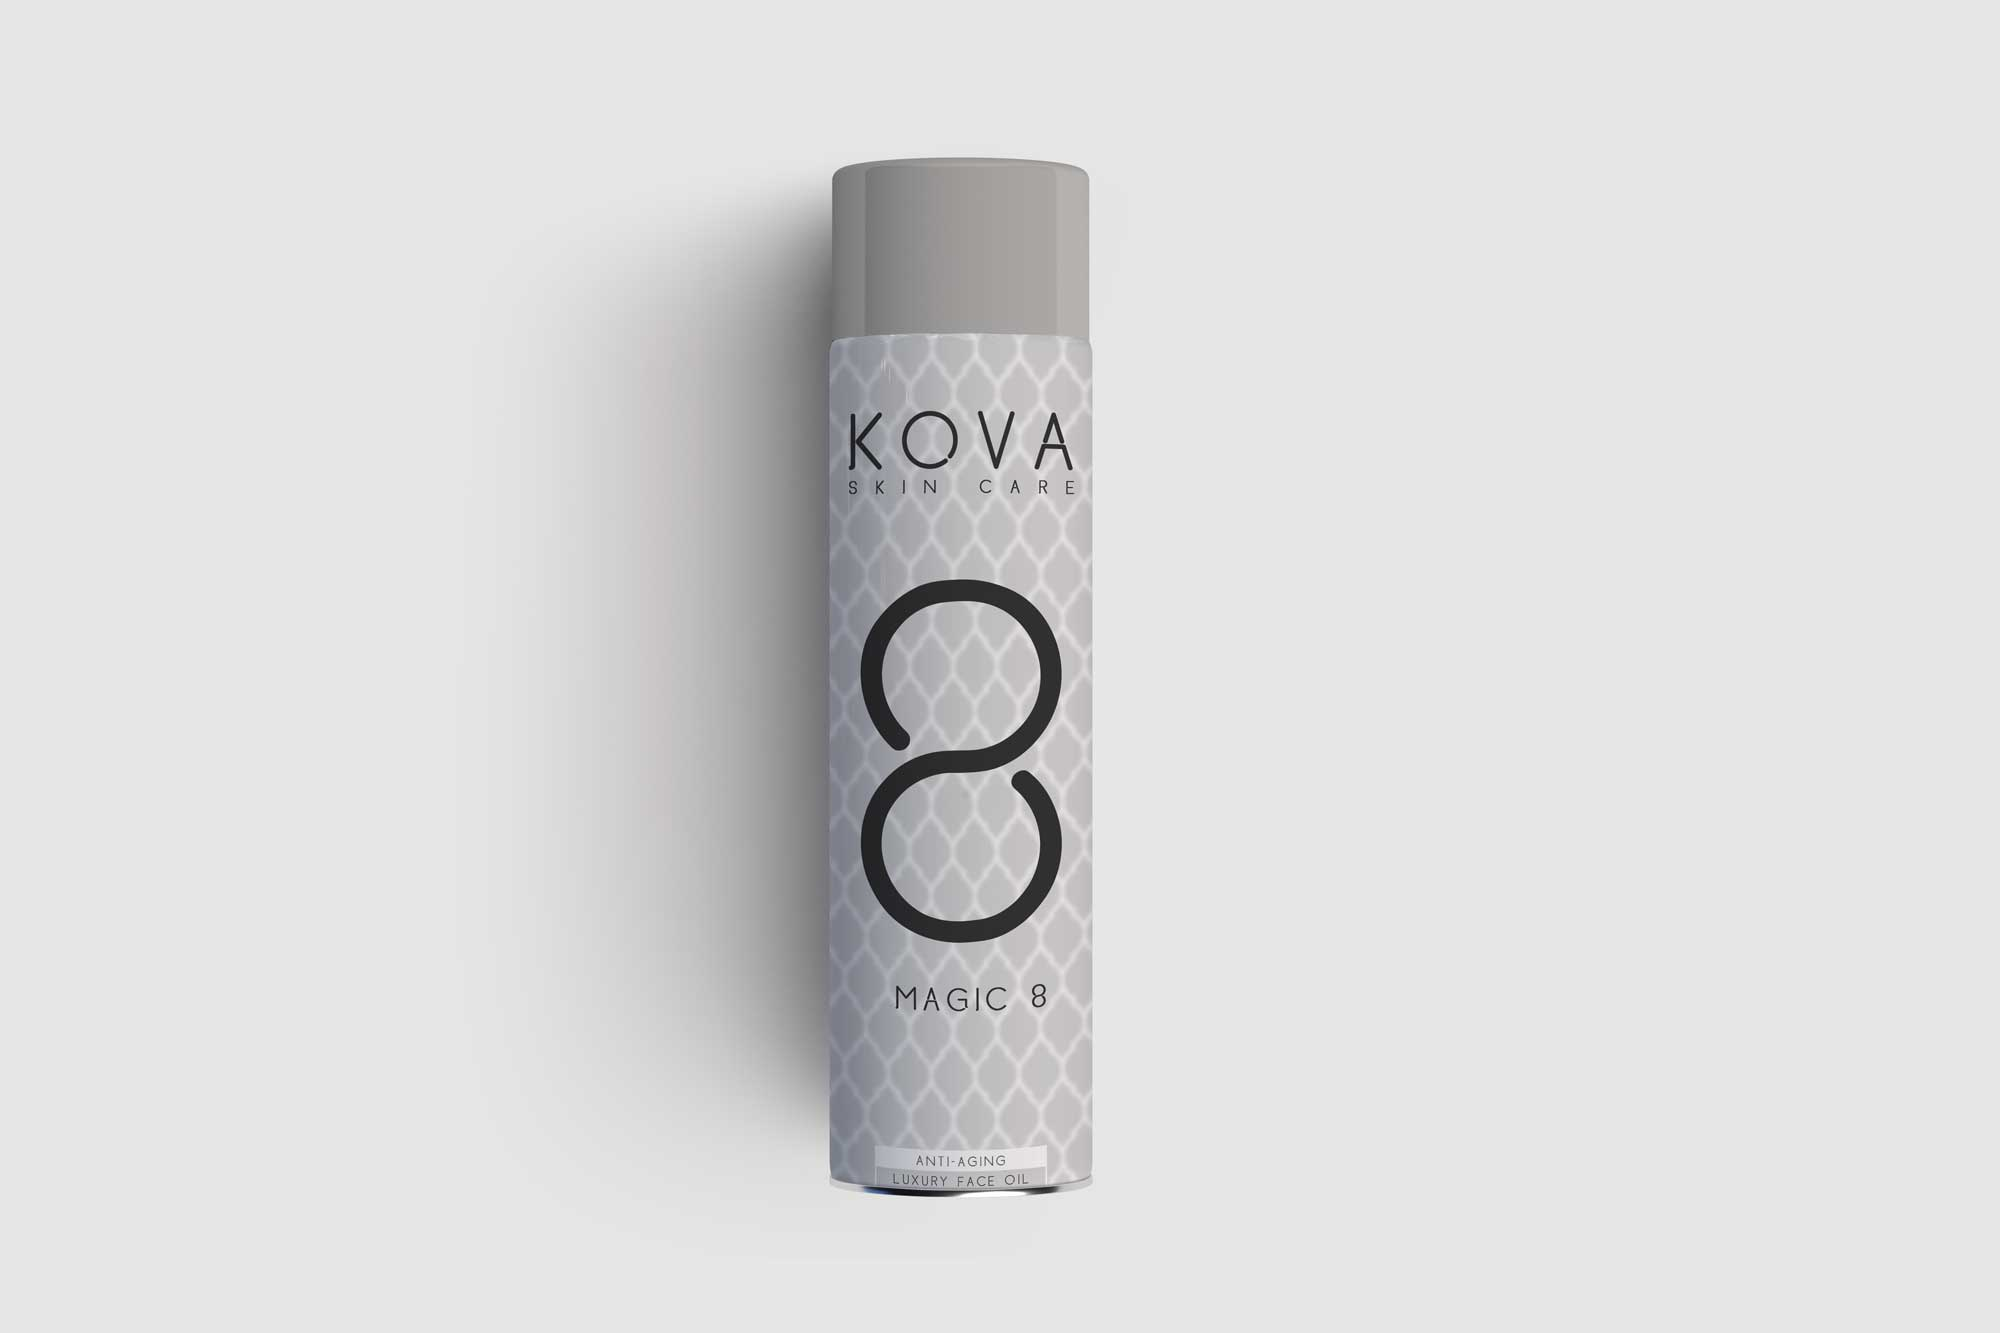 Free Deo Spray Bottle Mockup